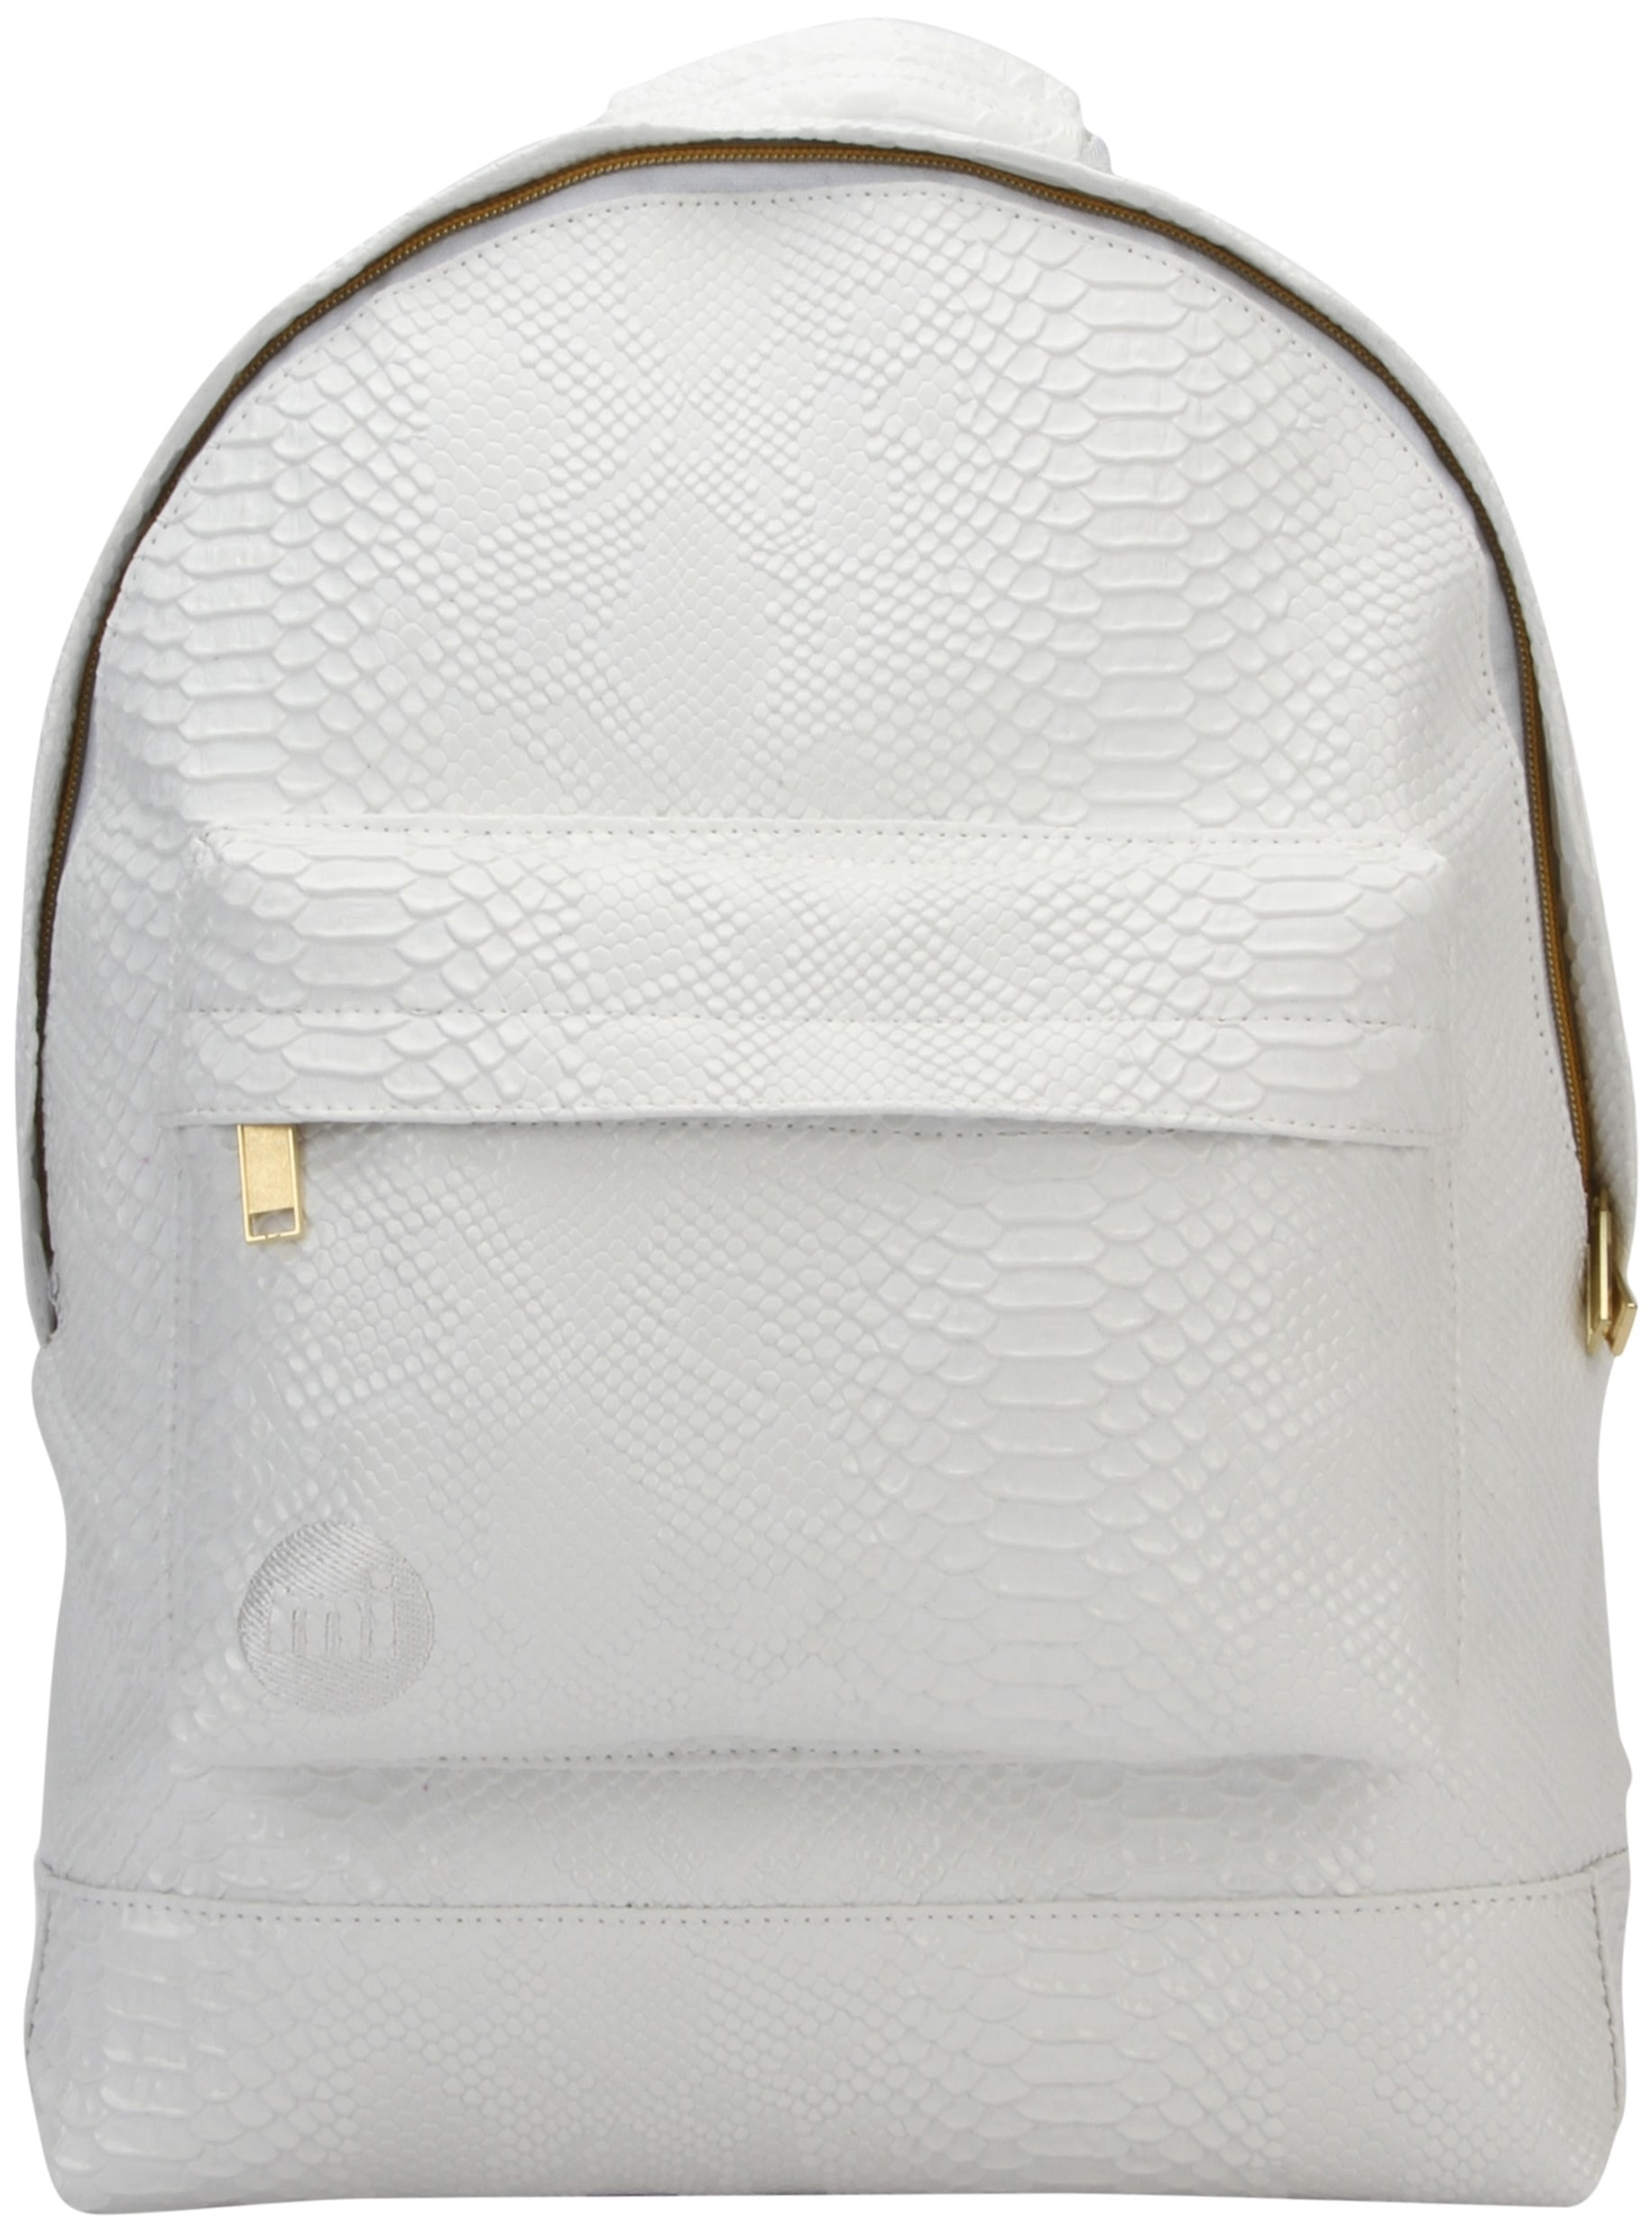 MiPac Patent Backpack  Python White